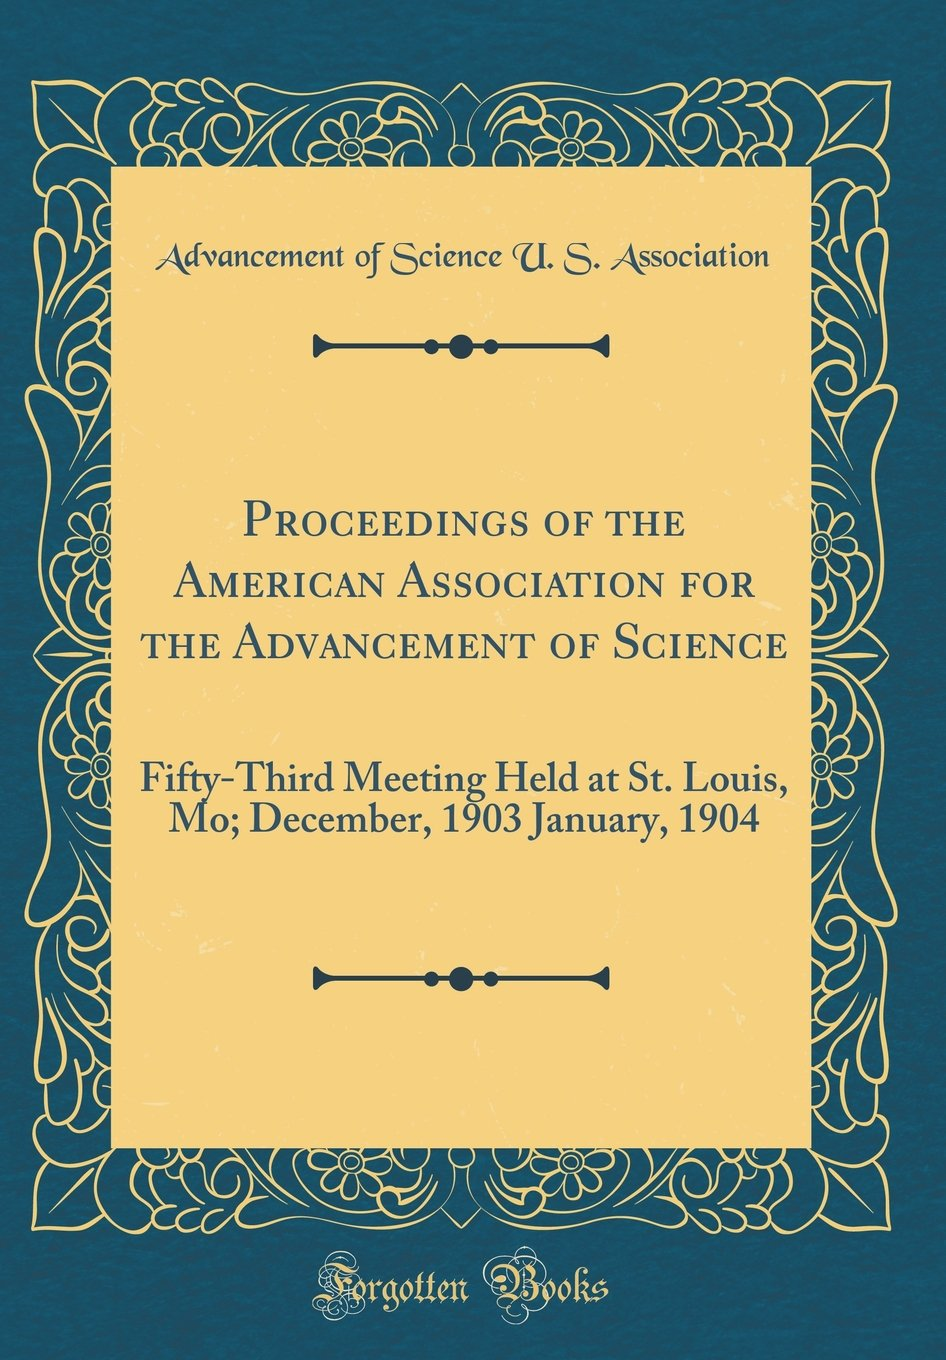 Download Proceedings of the American Association for the Advancement of Science: Fifty-Third Meeting Held at St. Louis, Mo; December, 1903 January, 1904 (Classic Reprint) pdf